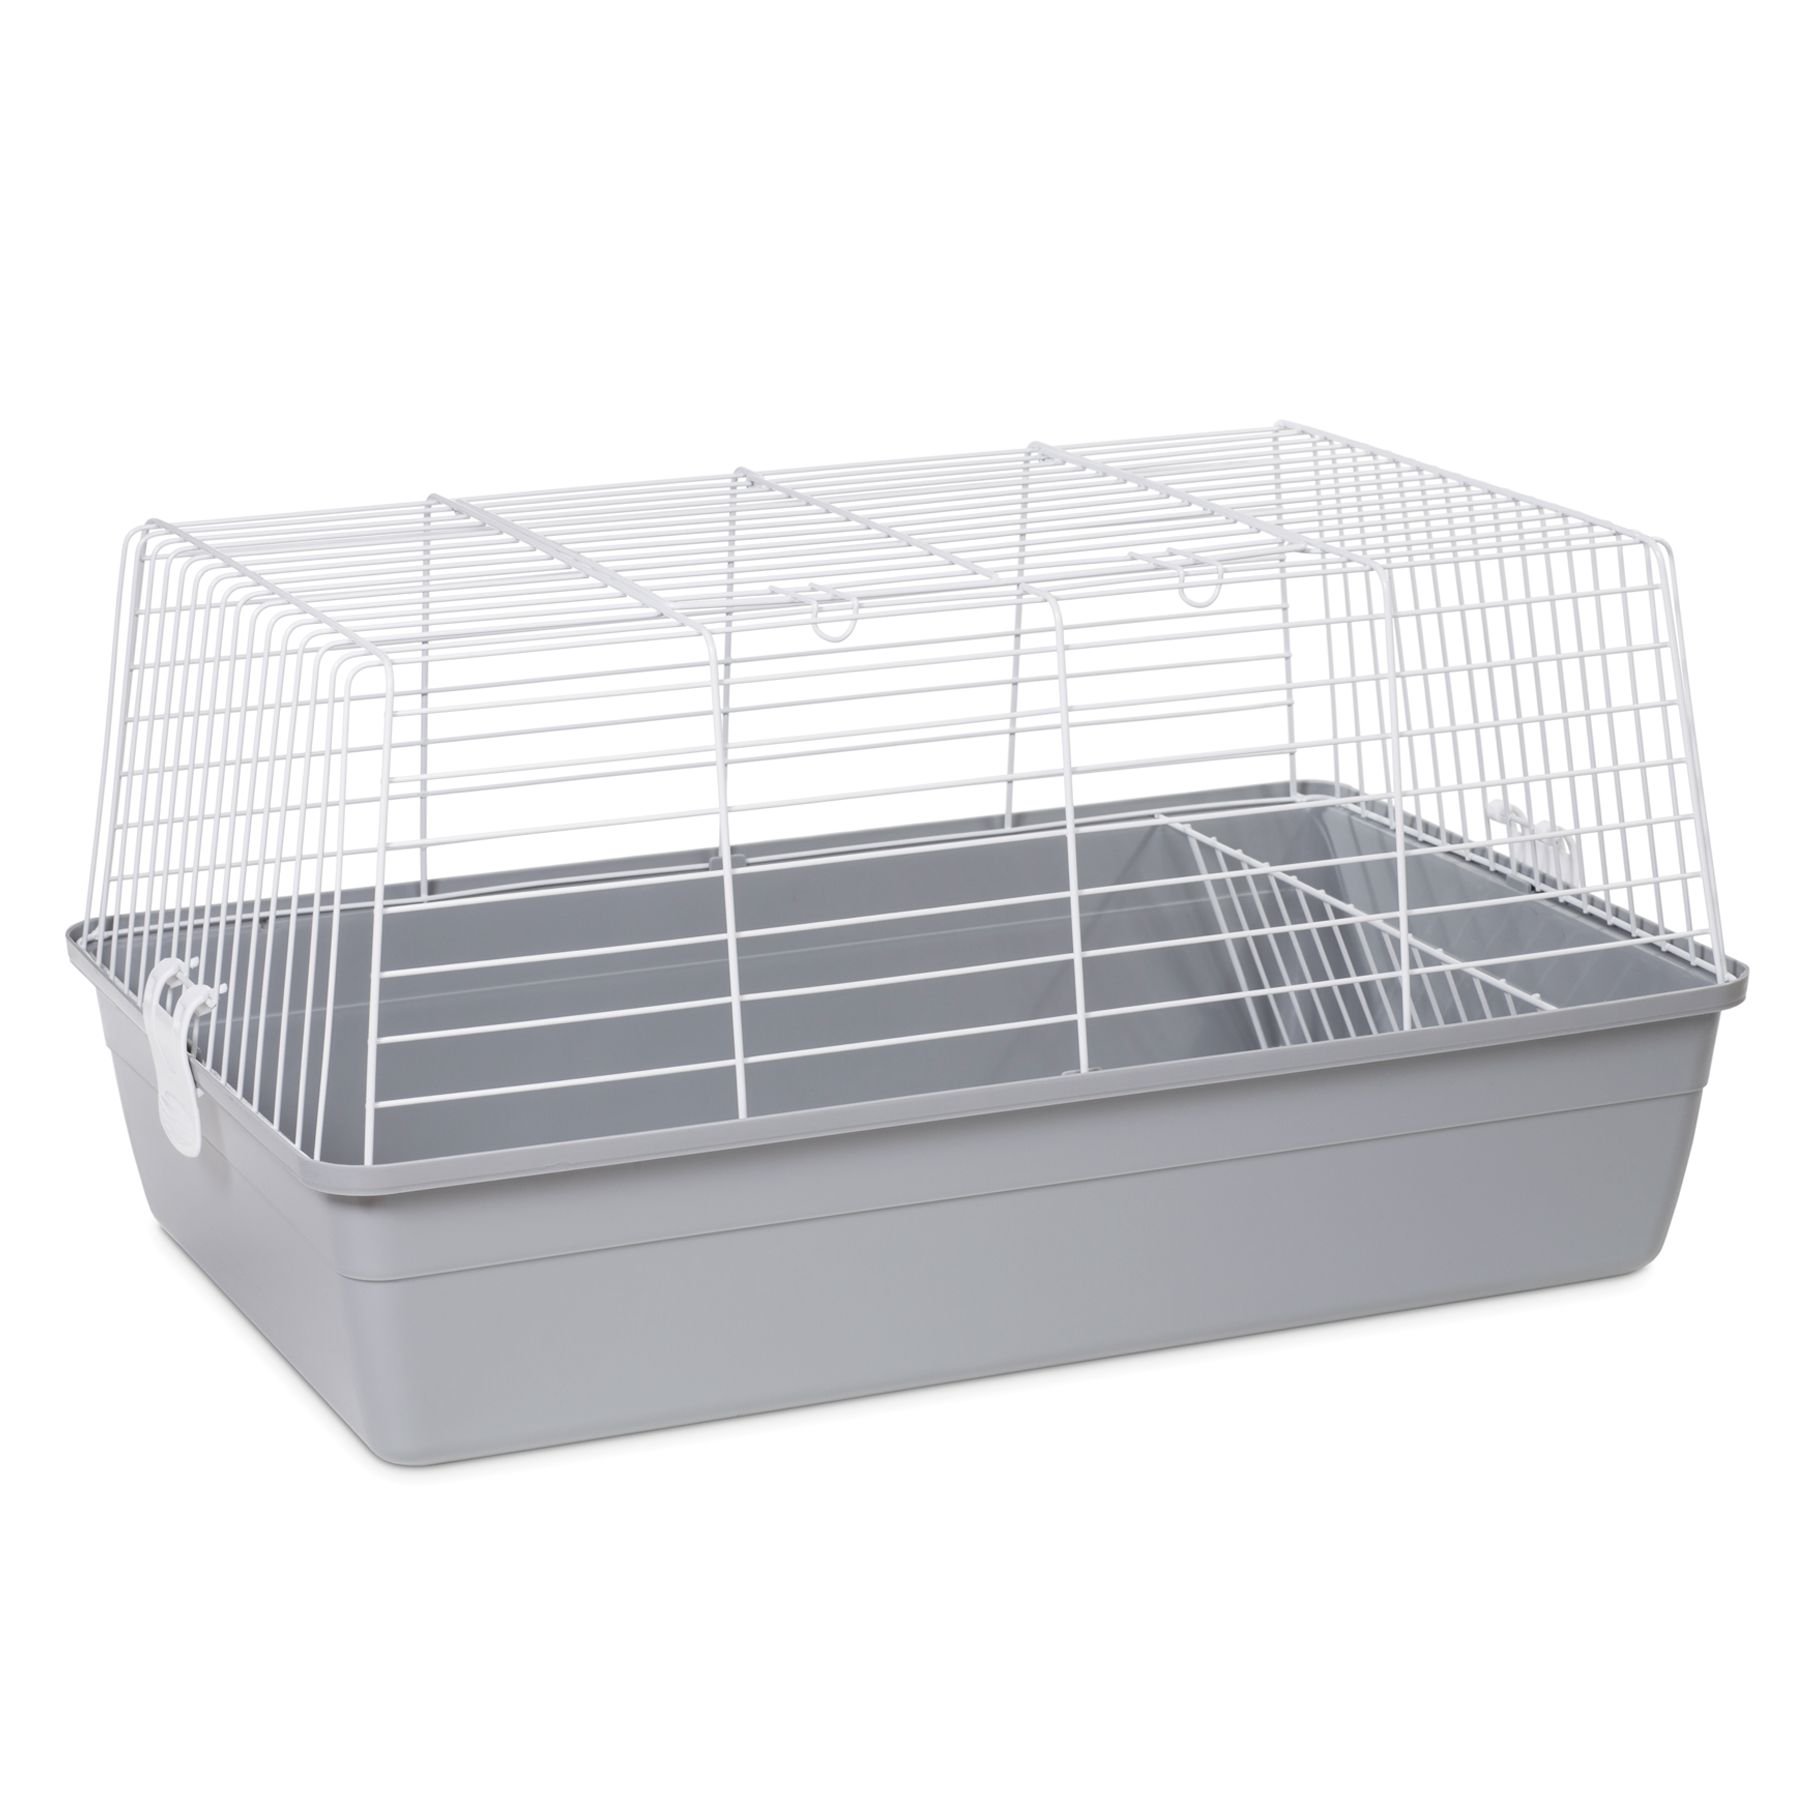 Prevue Pet Products Small Animal Cage size: Small 5250004